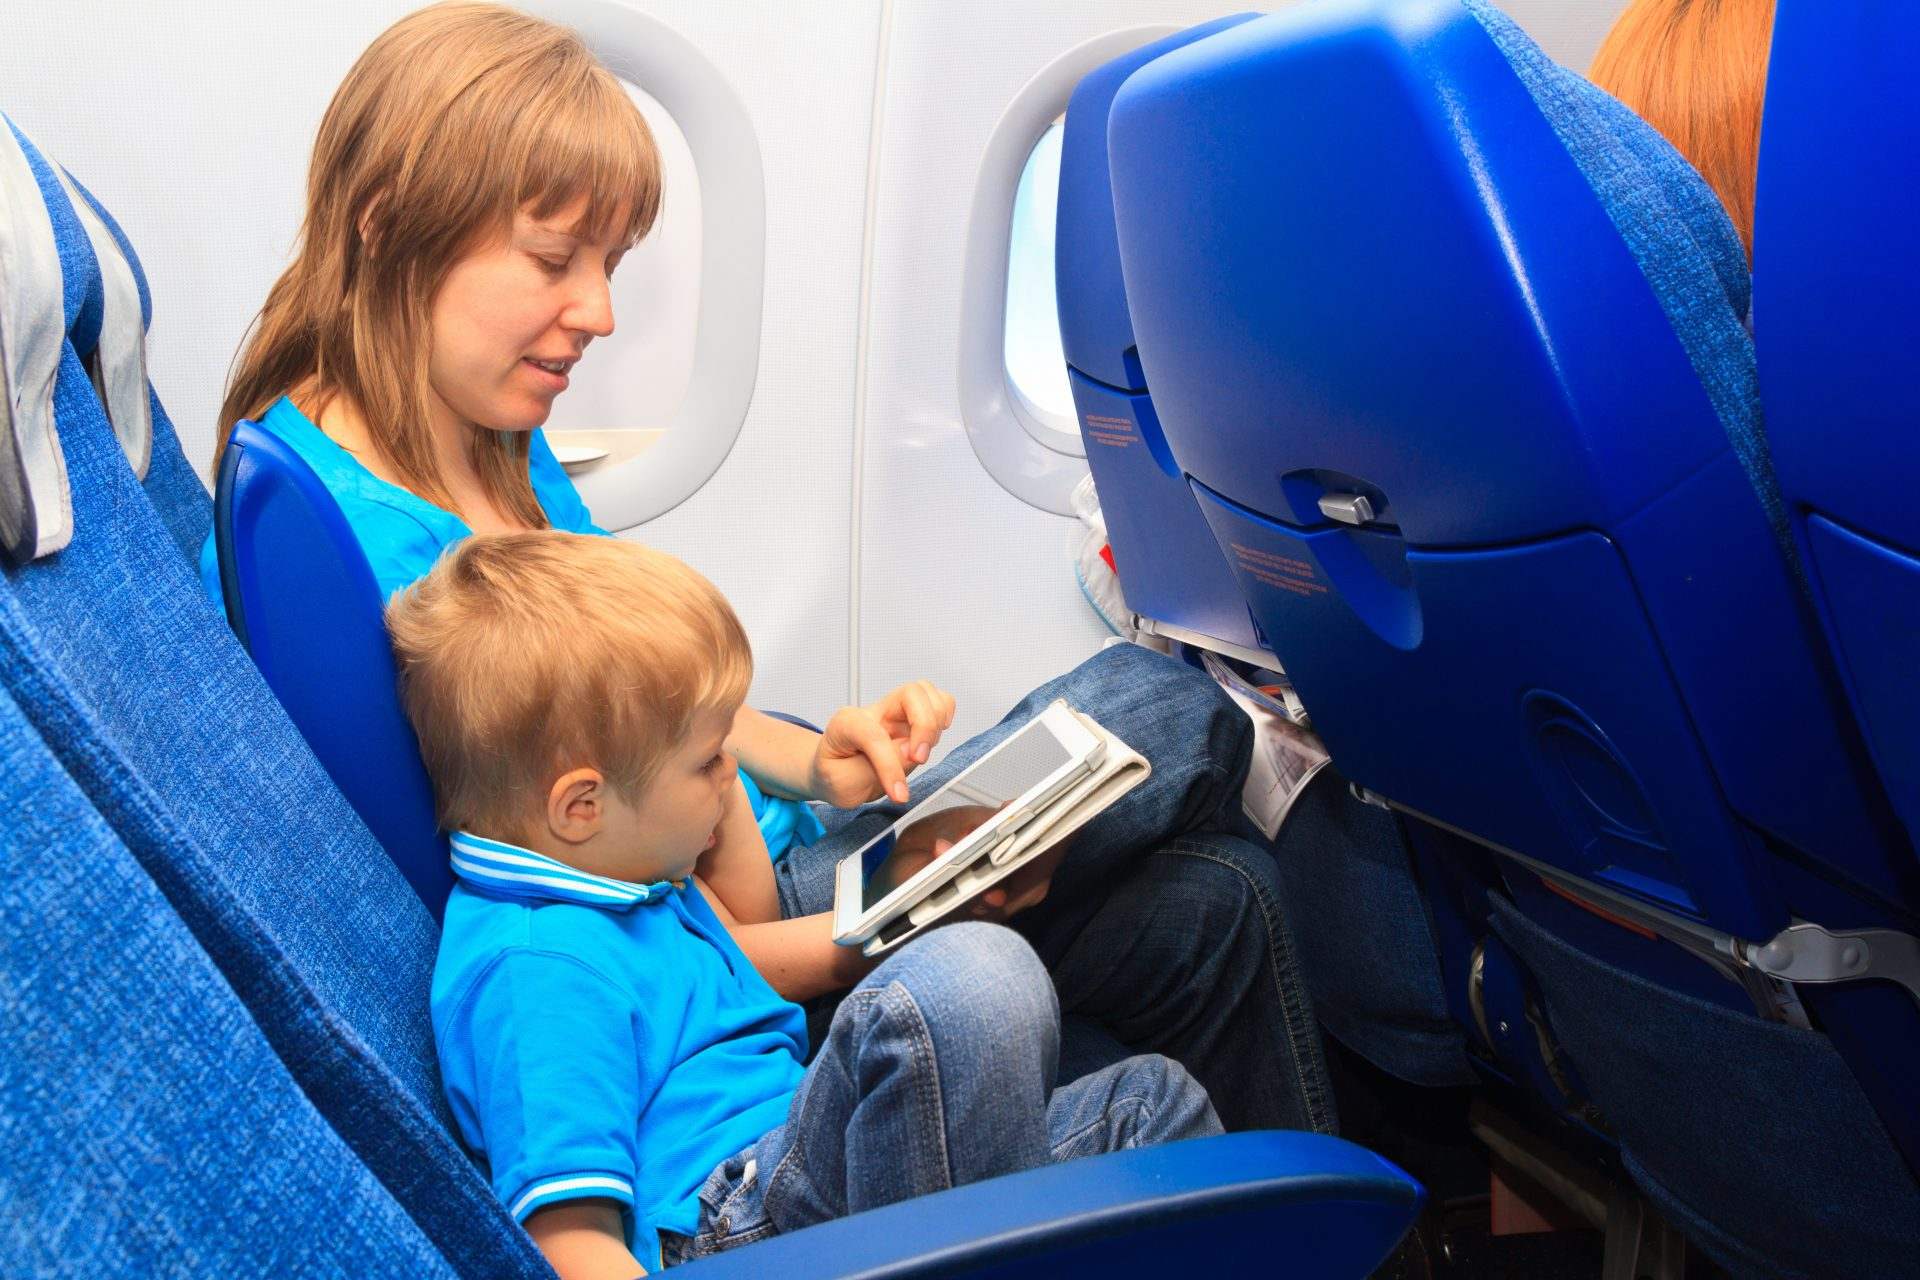 Mother plays games on a tablet with her young son as they fly on an airplane - - Flying with a baby